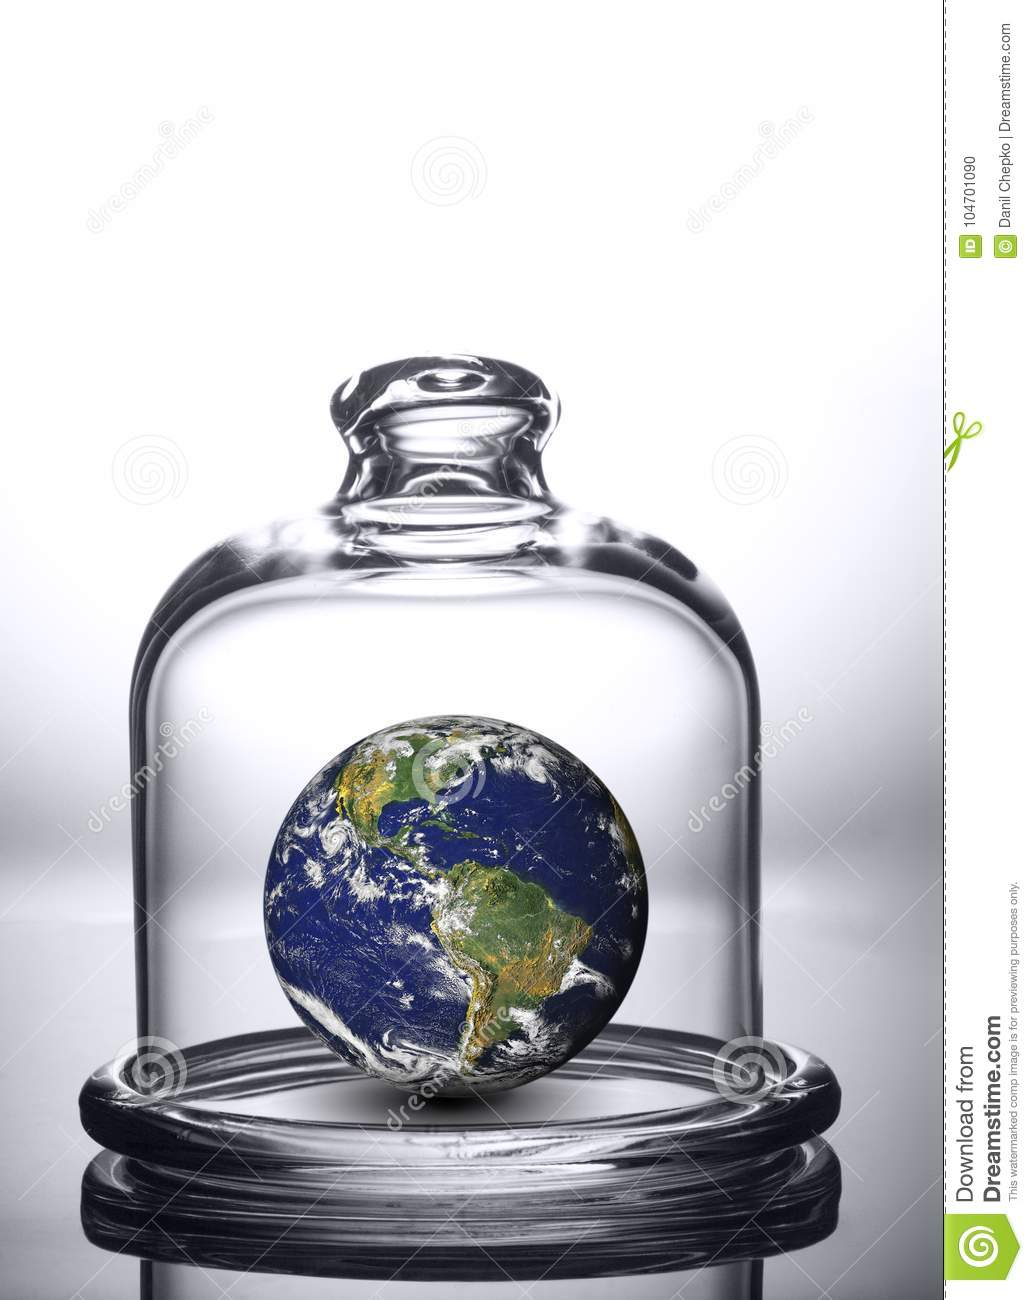 Earth under the dome. Planet under glass bell jar. Elements of t